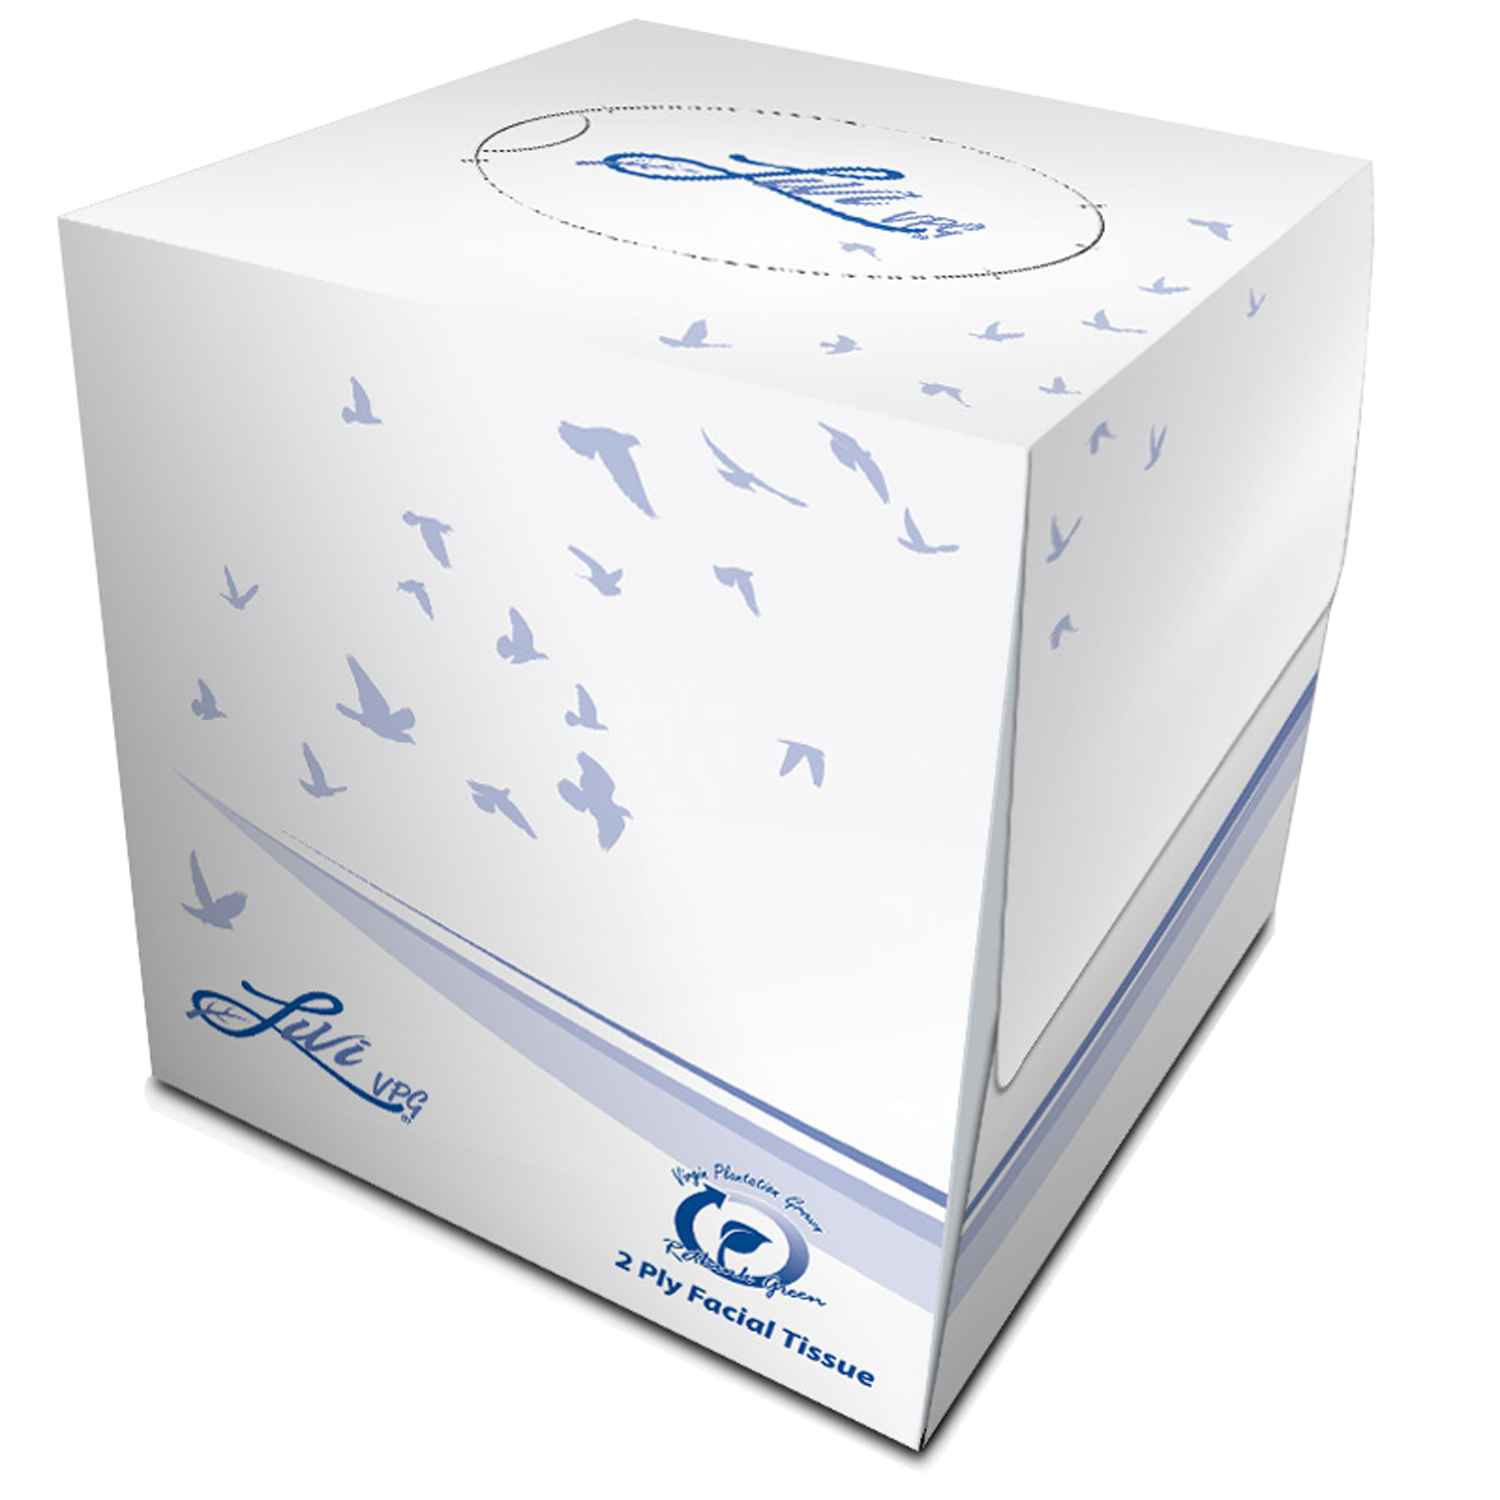 FACIAL TISSUE CUBE BOX 2-PLY 36 BOXES 90